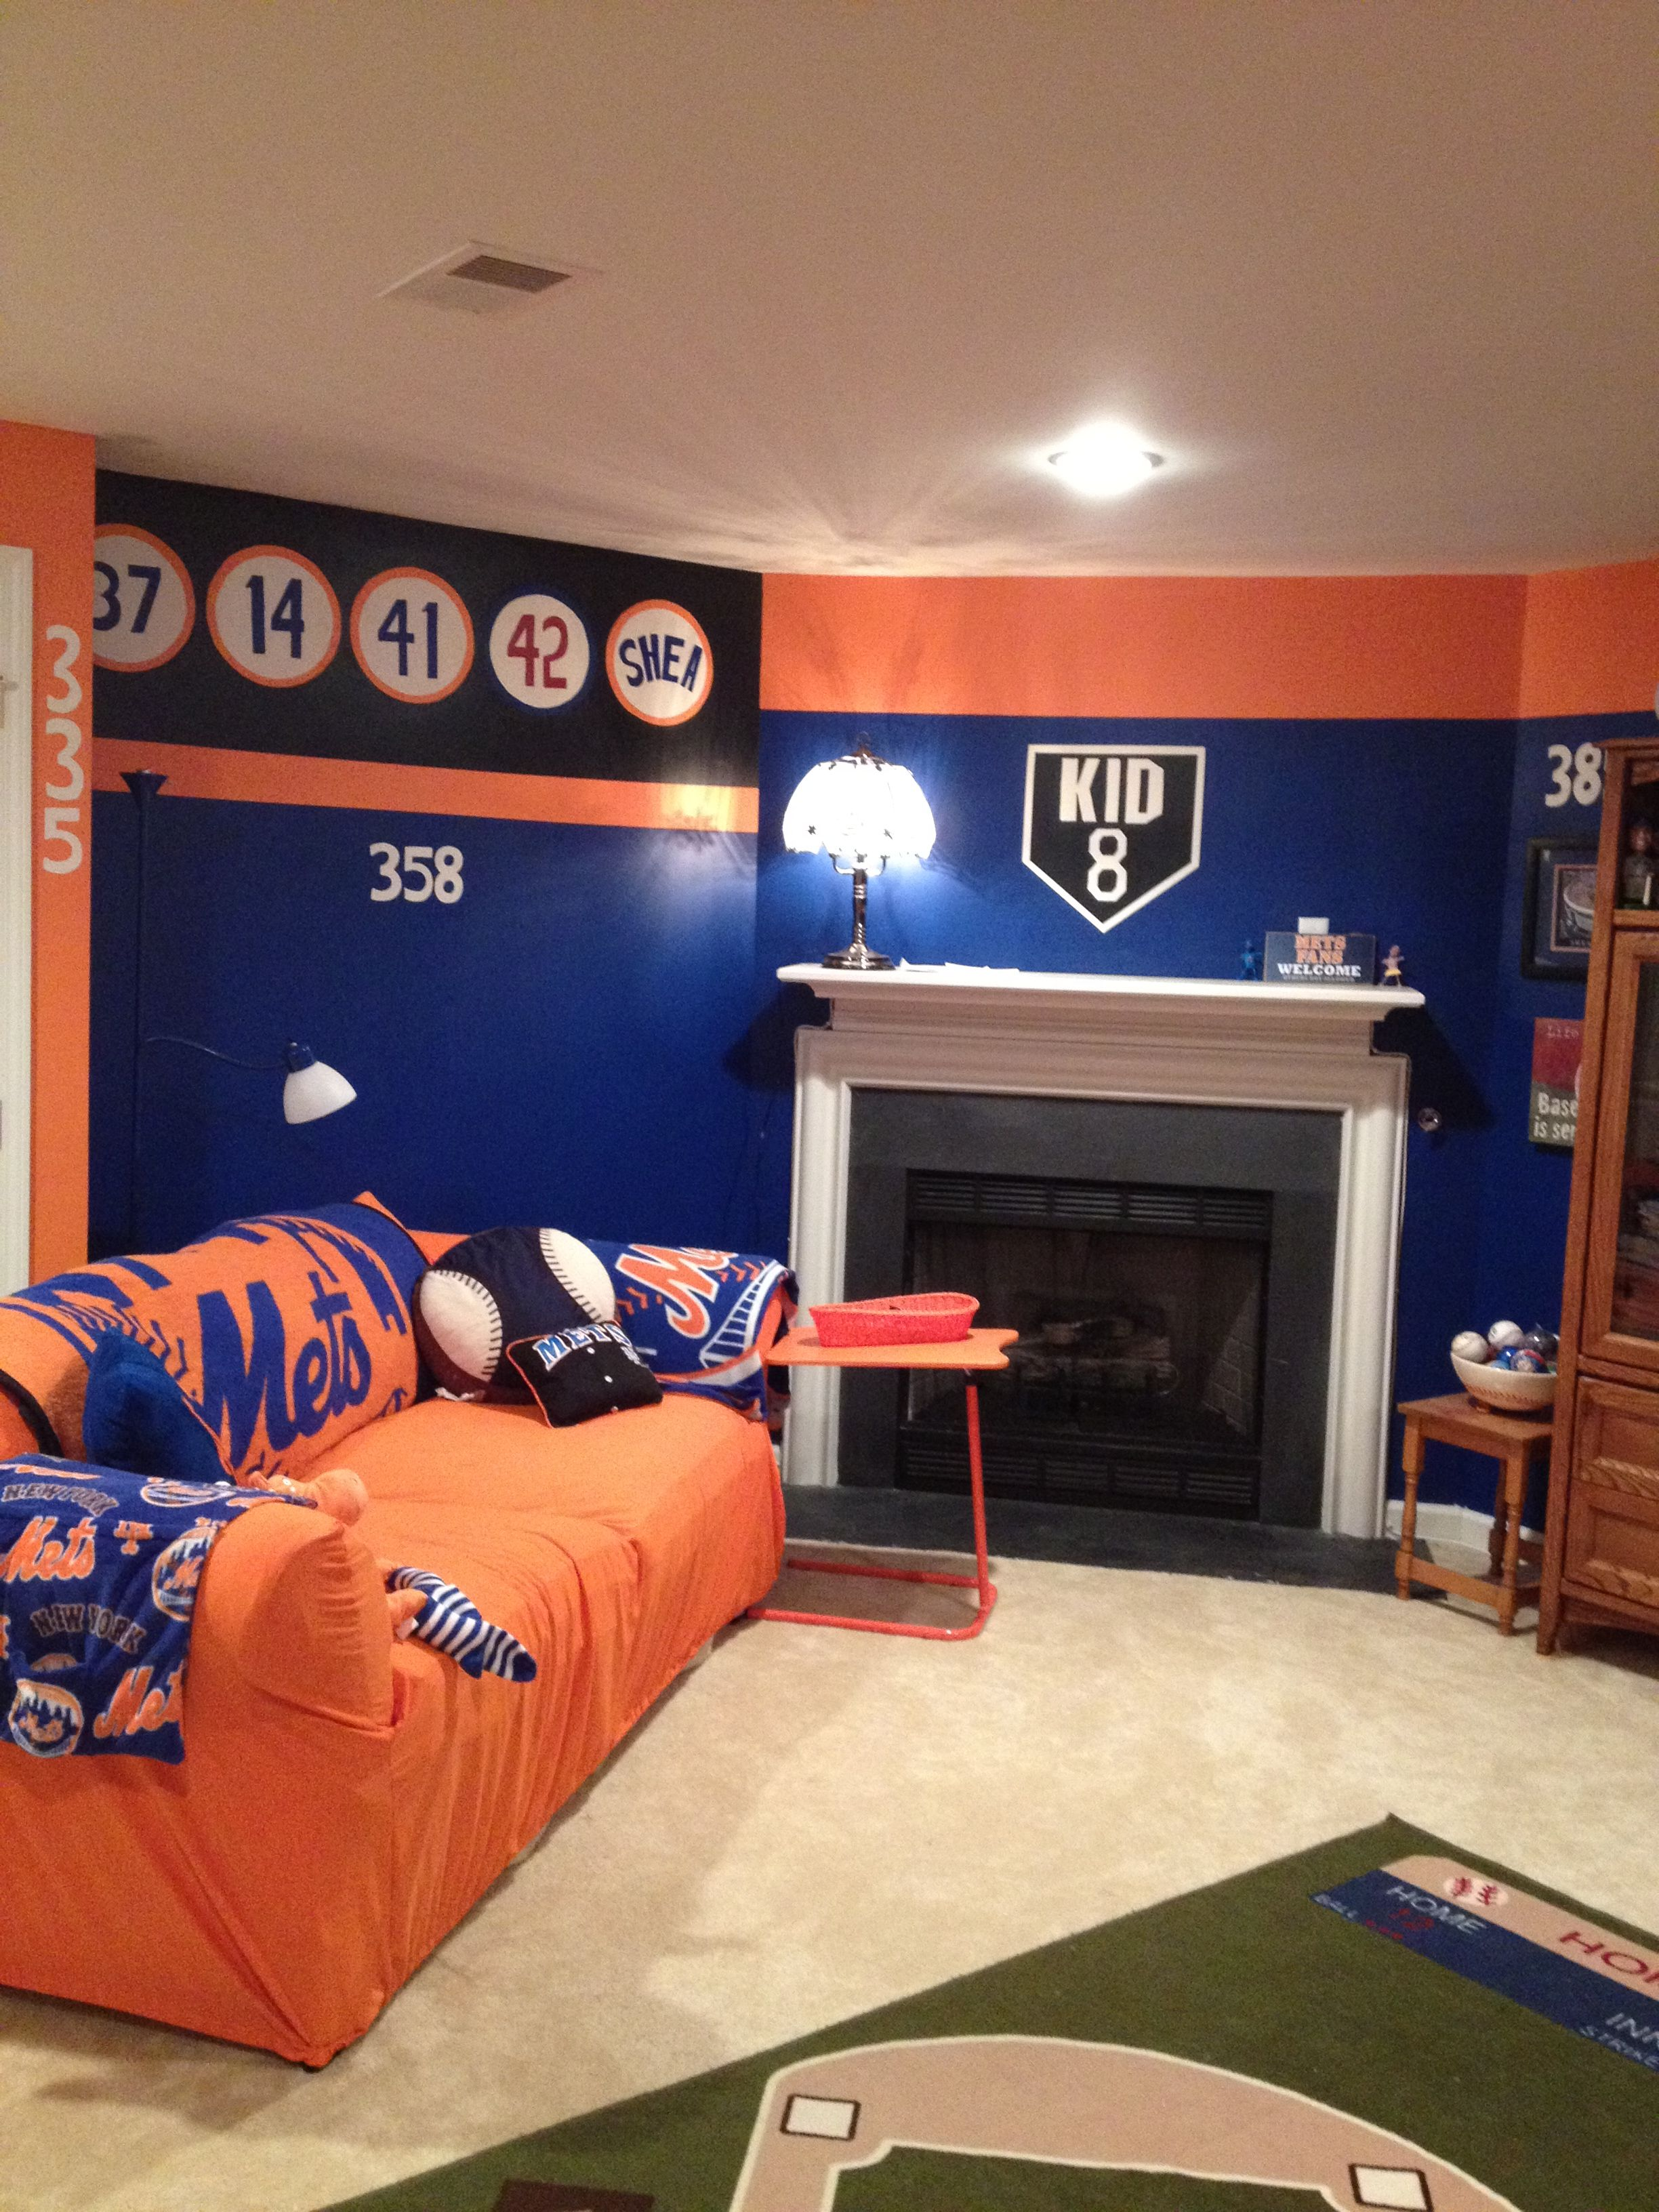 We'll be celebrating Mets Opening Day in our Mets Room!